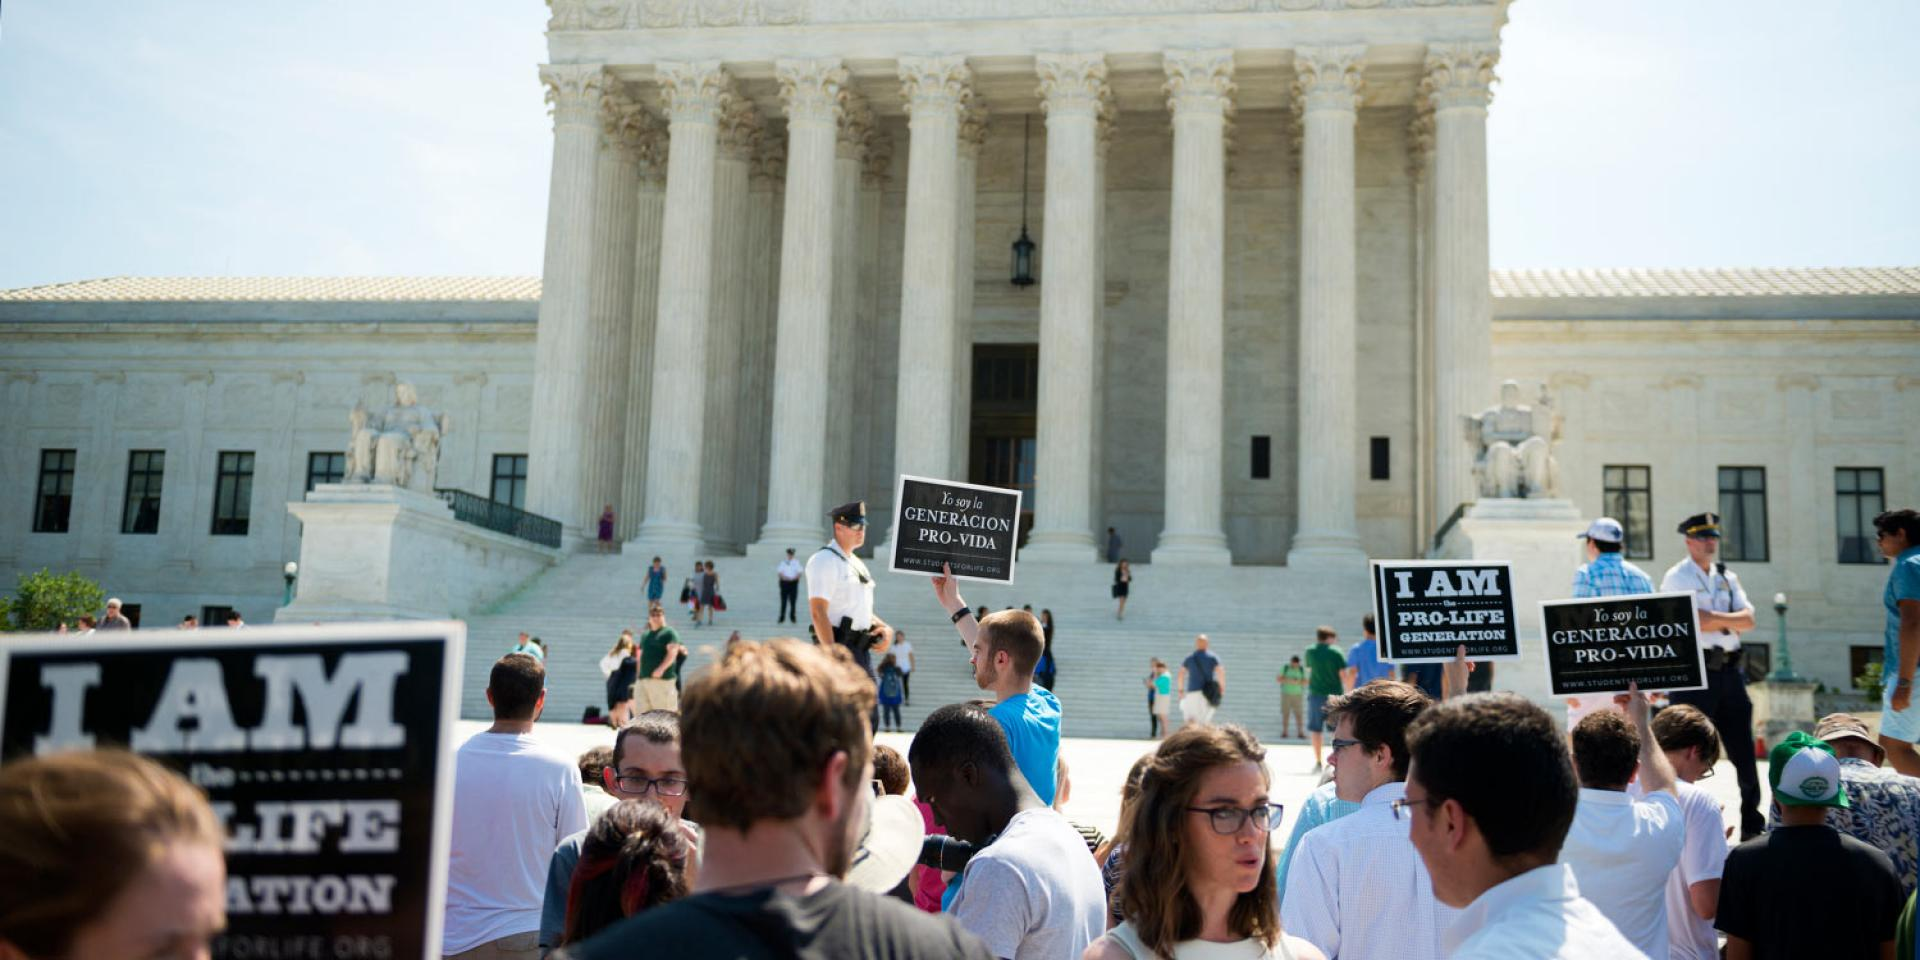 Photo of protesters in front of the United States Supreme Court